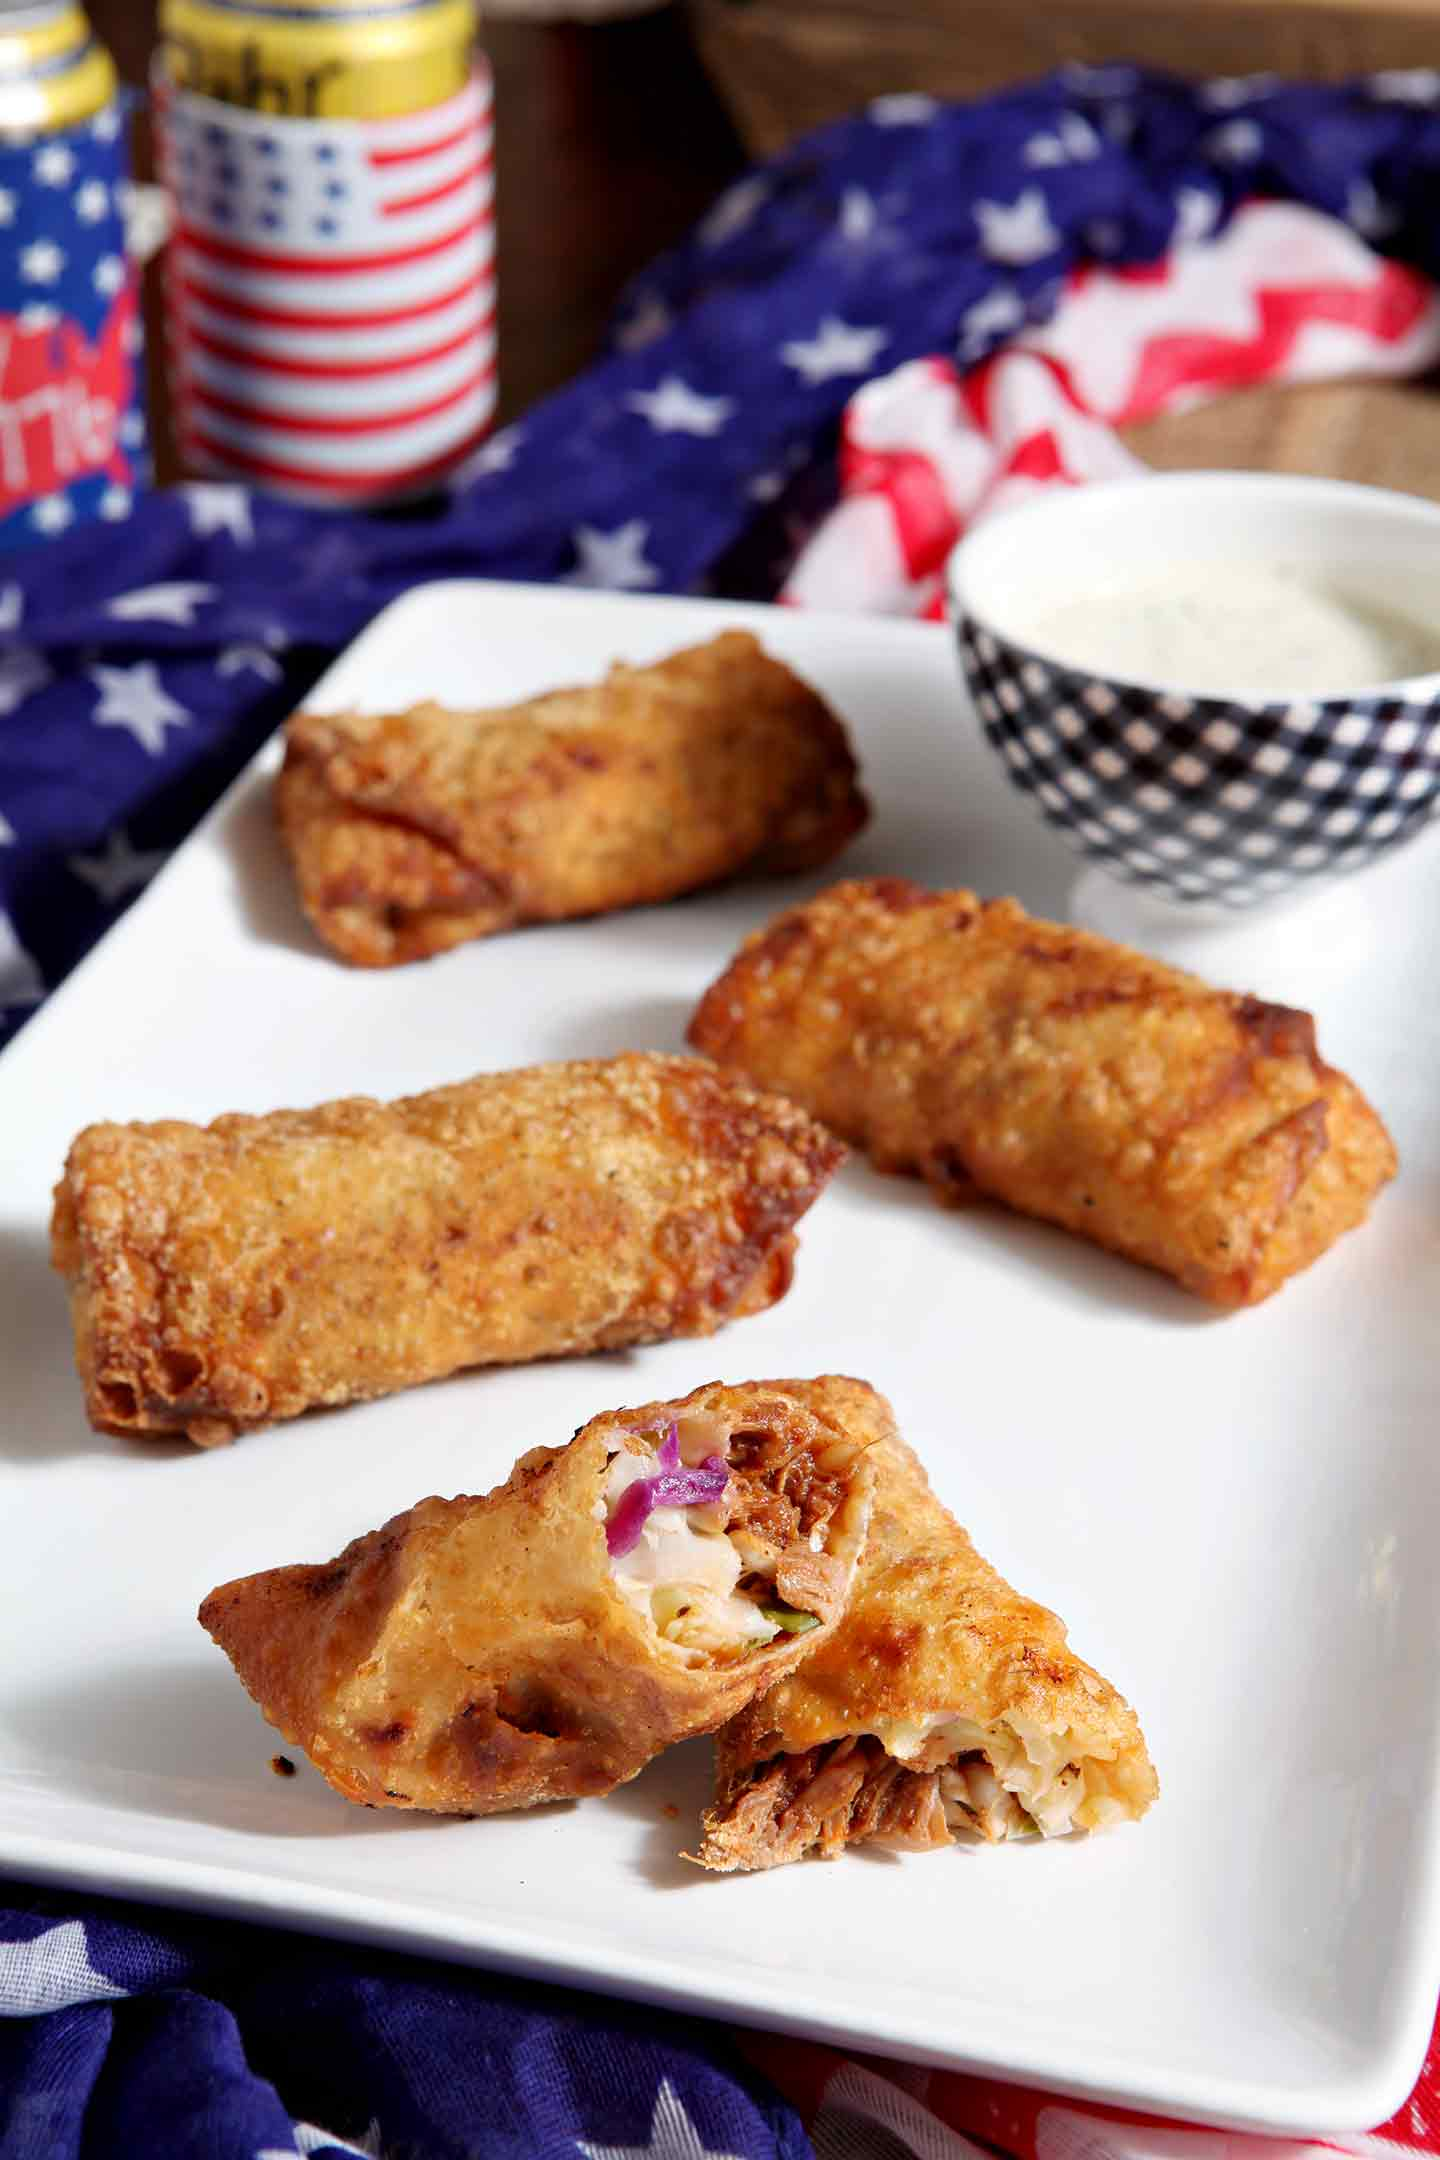 A Southern classic combined with an Asian favorite makes this delightful mash-up. Homemade Pulled Pork (in a tangy barbecue sauce!) is made in the slow cooker, then creamy coleslaw, made with yogurt instead of mayo, is tossed together. When ready, the pulled pork and coleslaw are rolled into eggroll wrappers, fried and served with creamy coleslaw sauce. Pulled Pork Coleslaw Eggrolls are a tasty appetizer to enjoy while watching the Summer Games! #spon